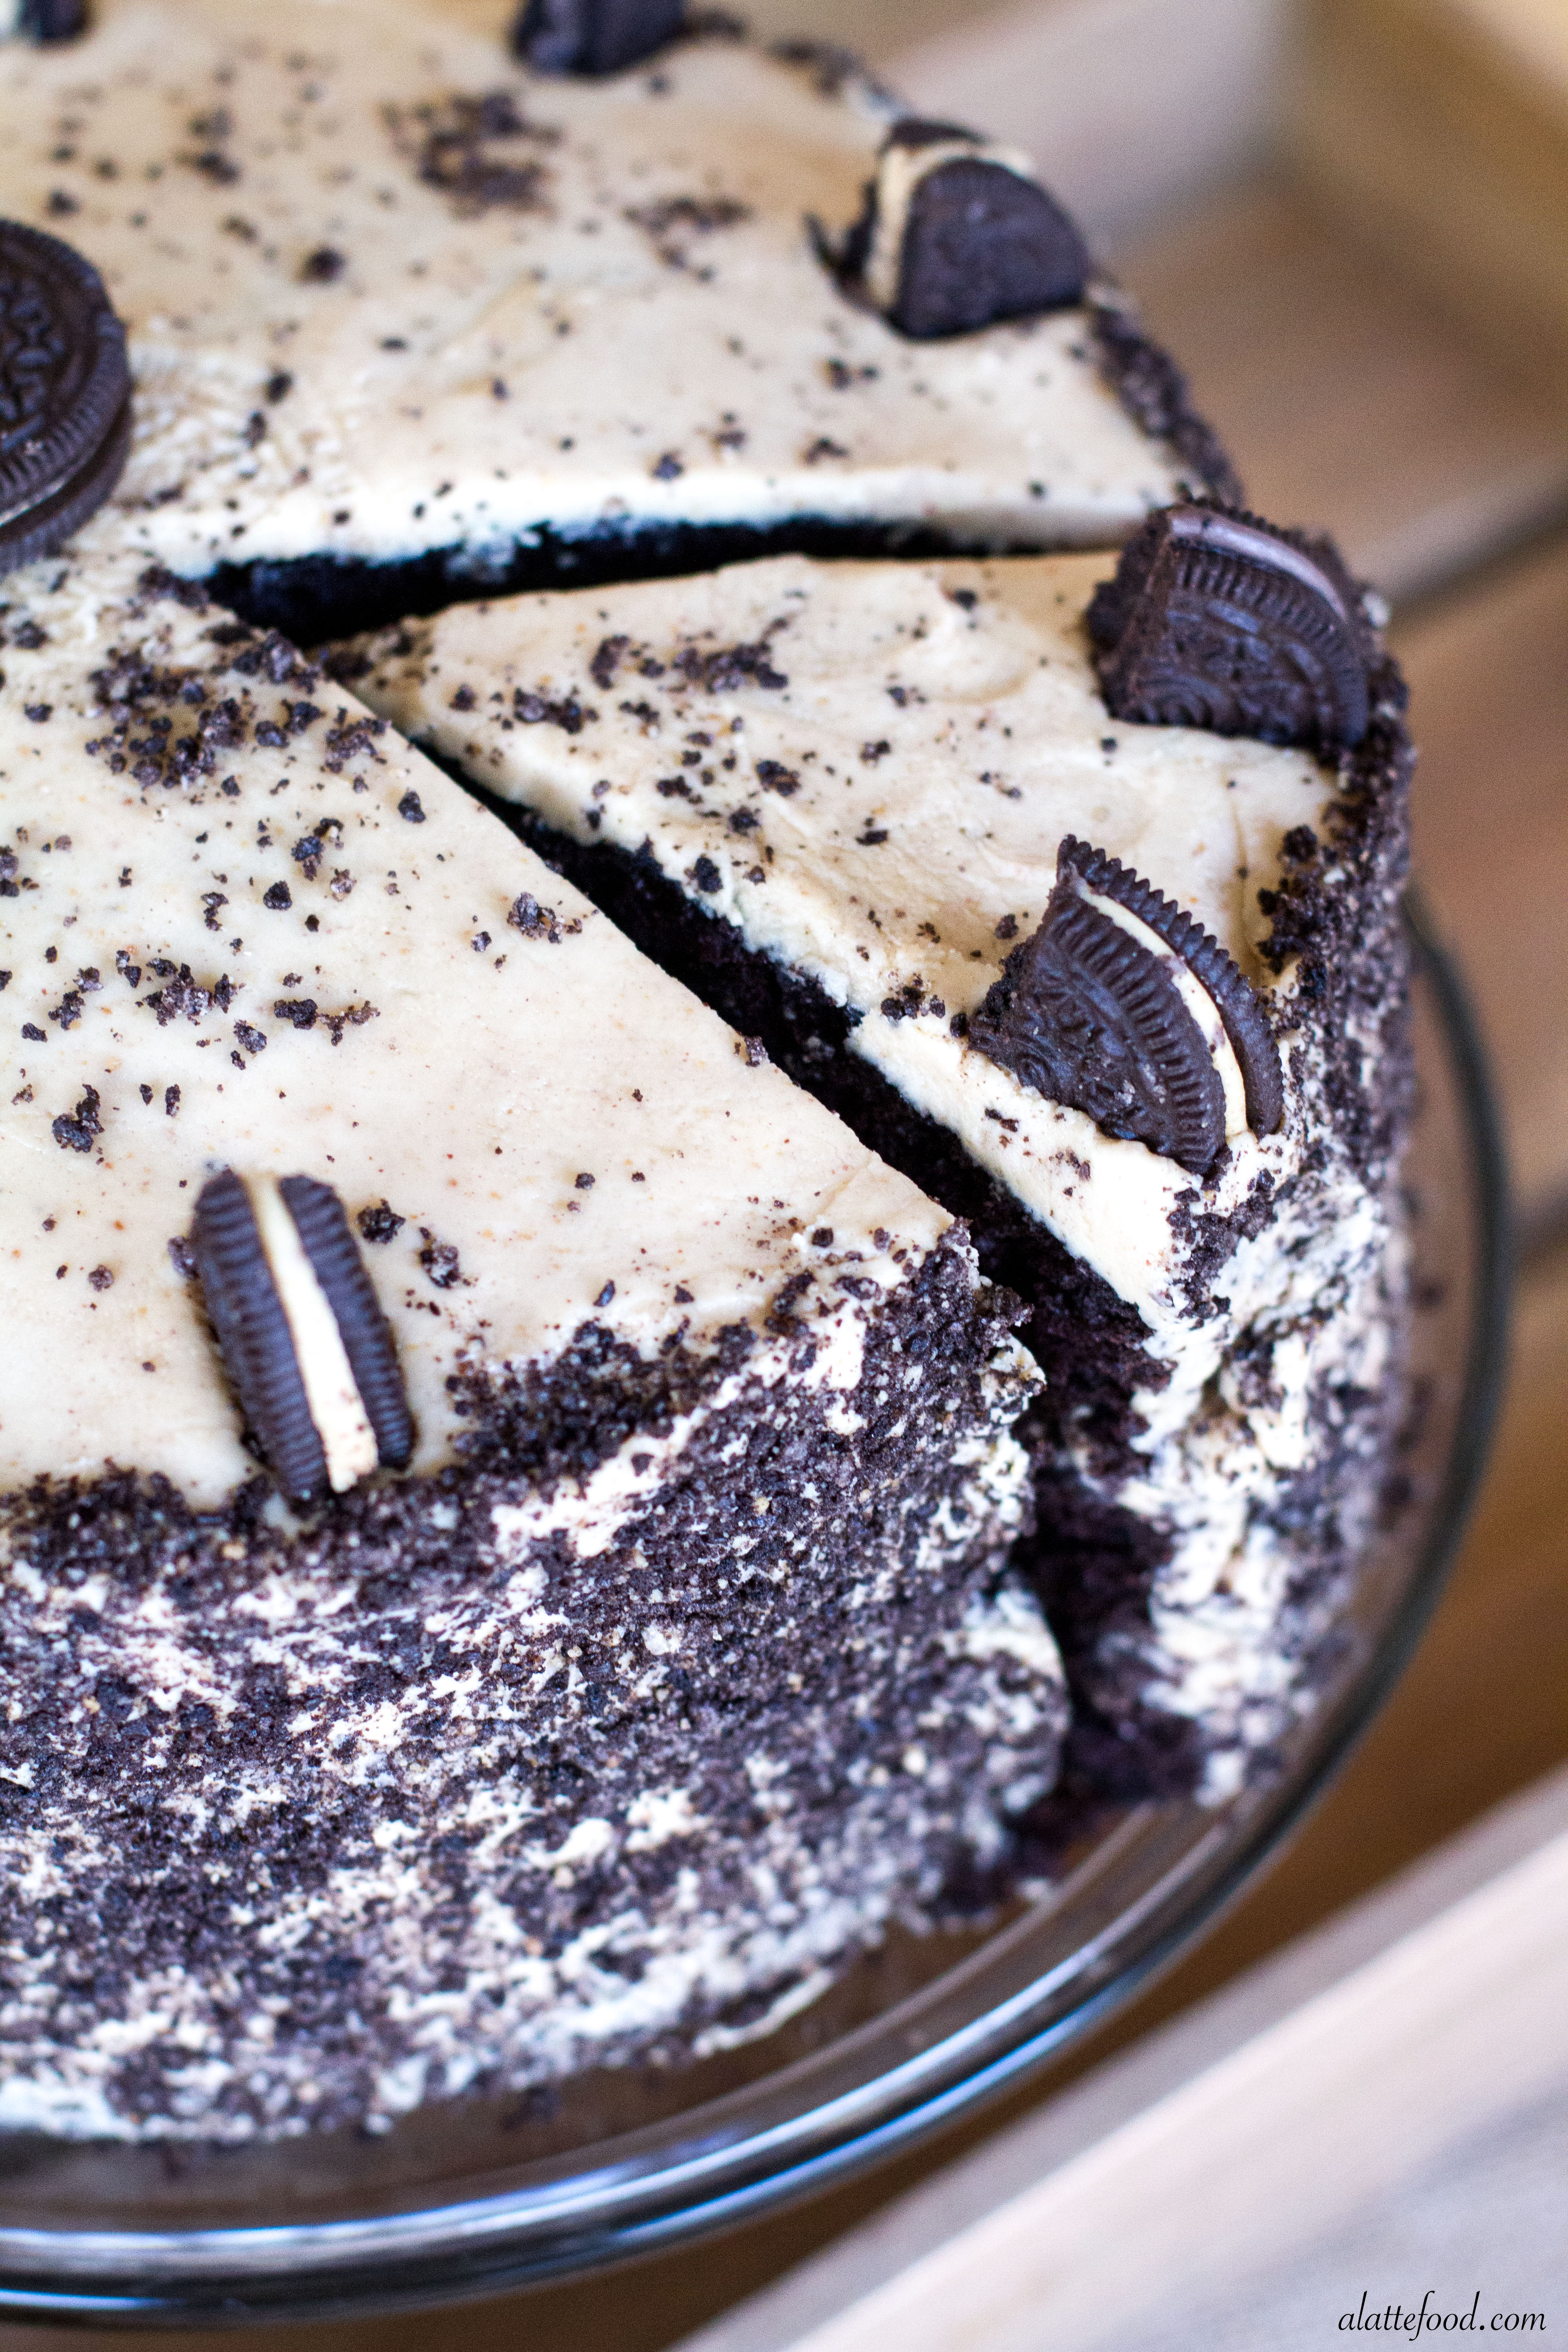 Description. Unsurprisingly, given the slight myriad of ingredients, this cake isn't based on a recipe – it was inspired by an Oreo-topped delight on Joy the Baker's blog, but the recipe is an original to The Usual Saucepans.